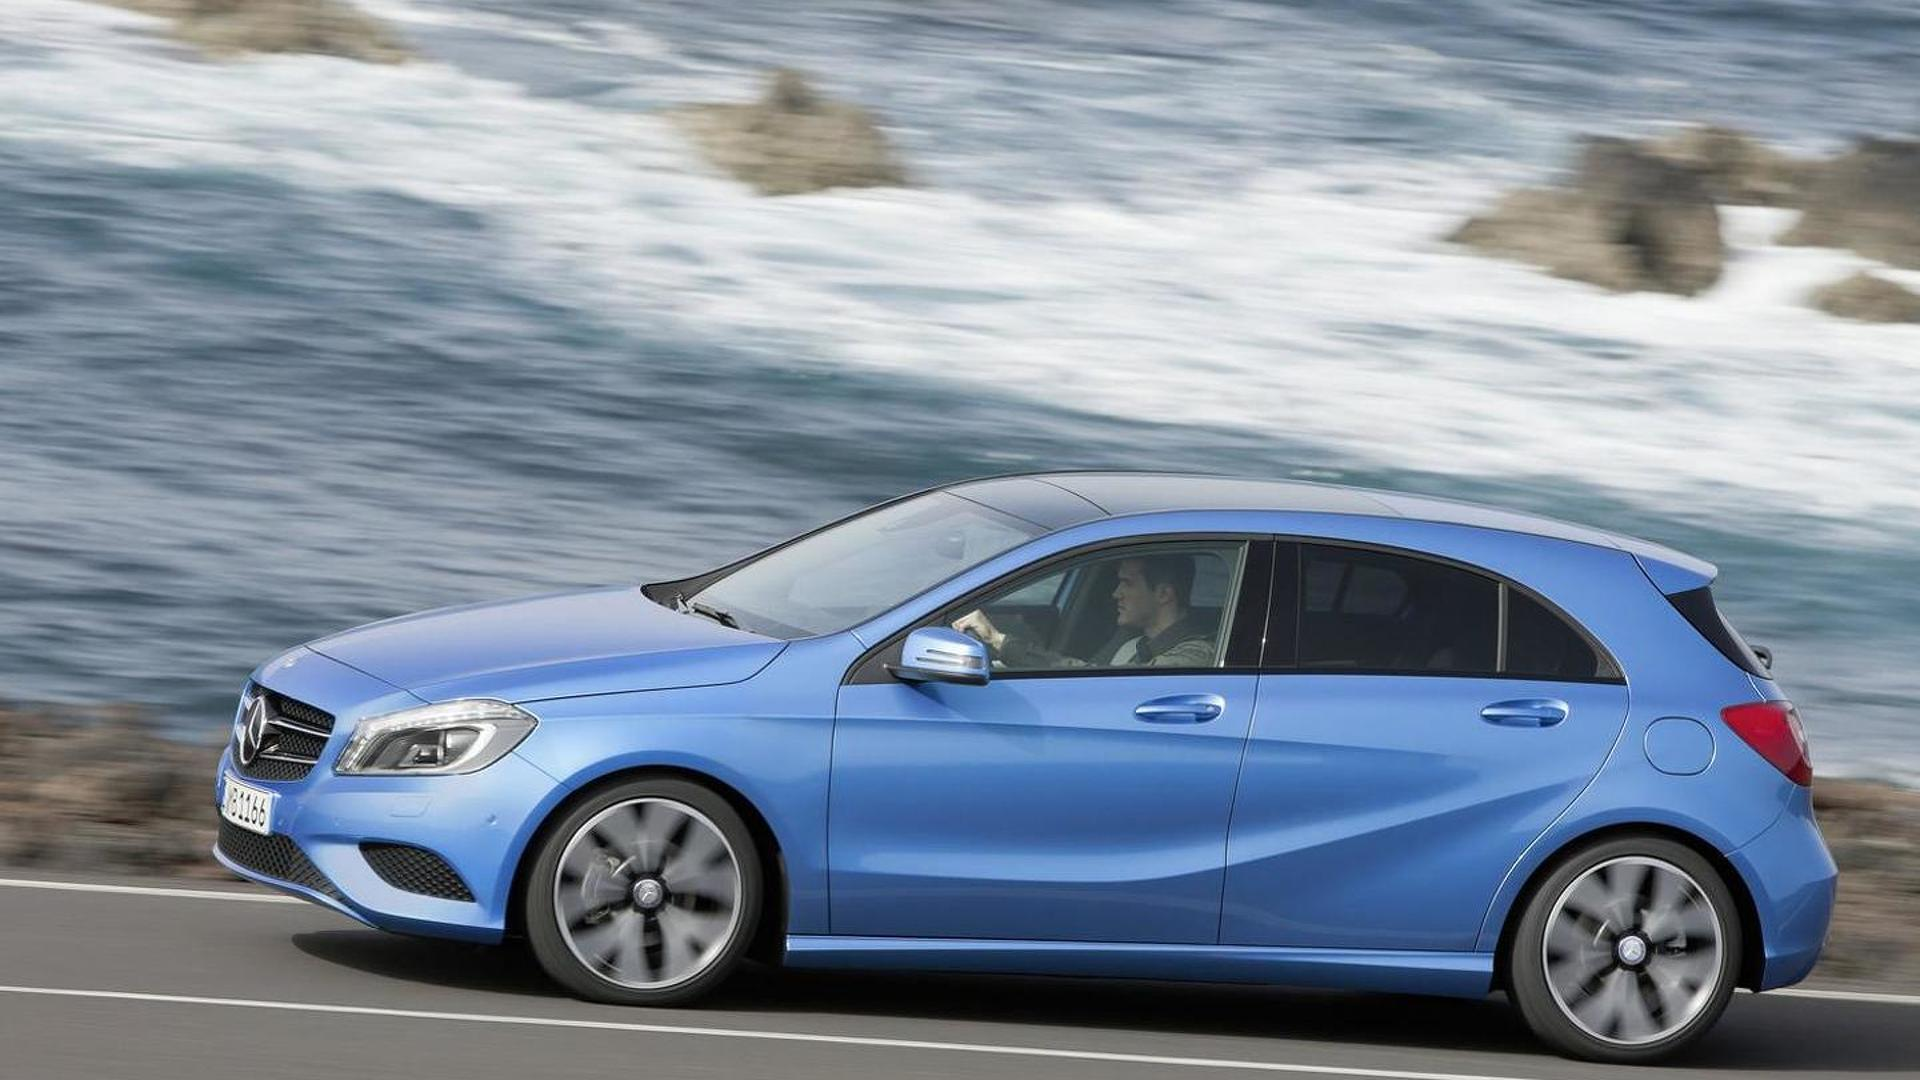 Mercedes Benz A-Class production to be supplemented by Valmet in Finland